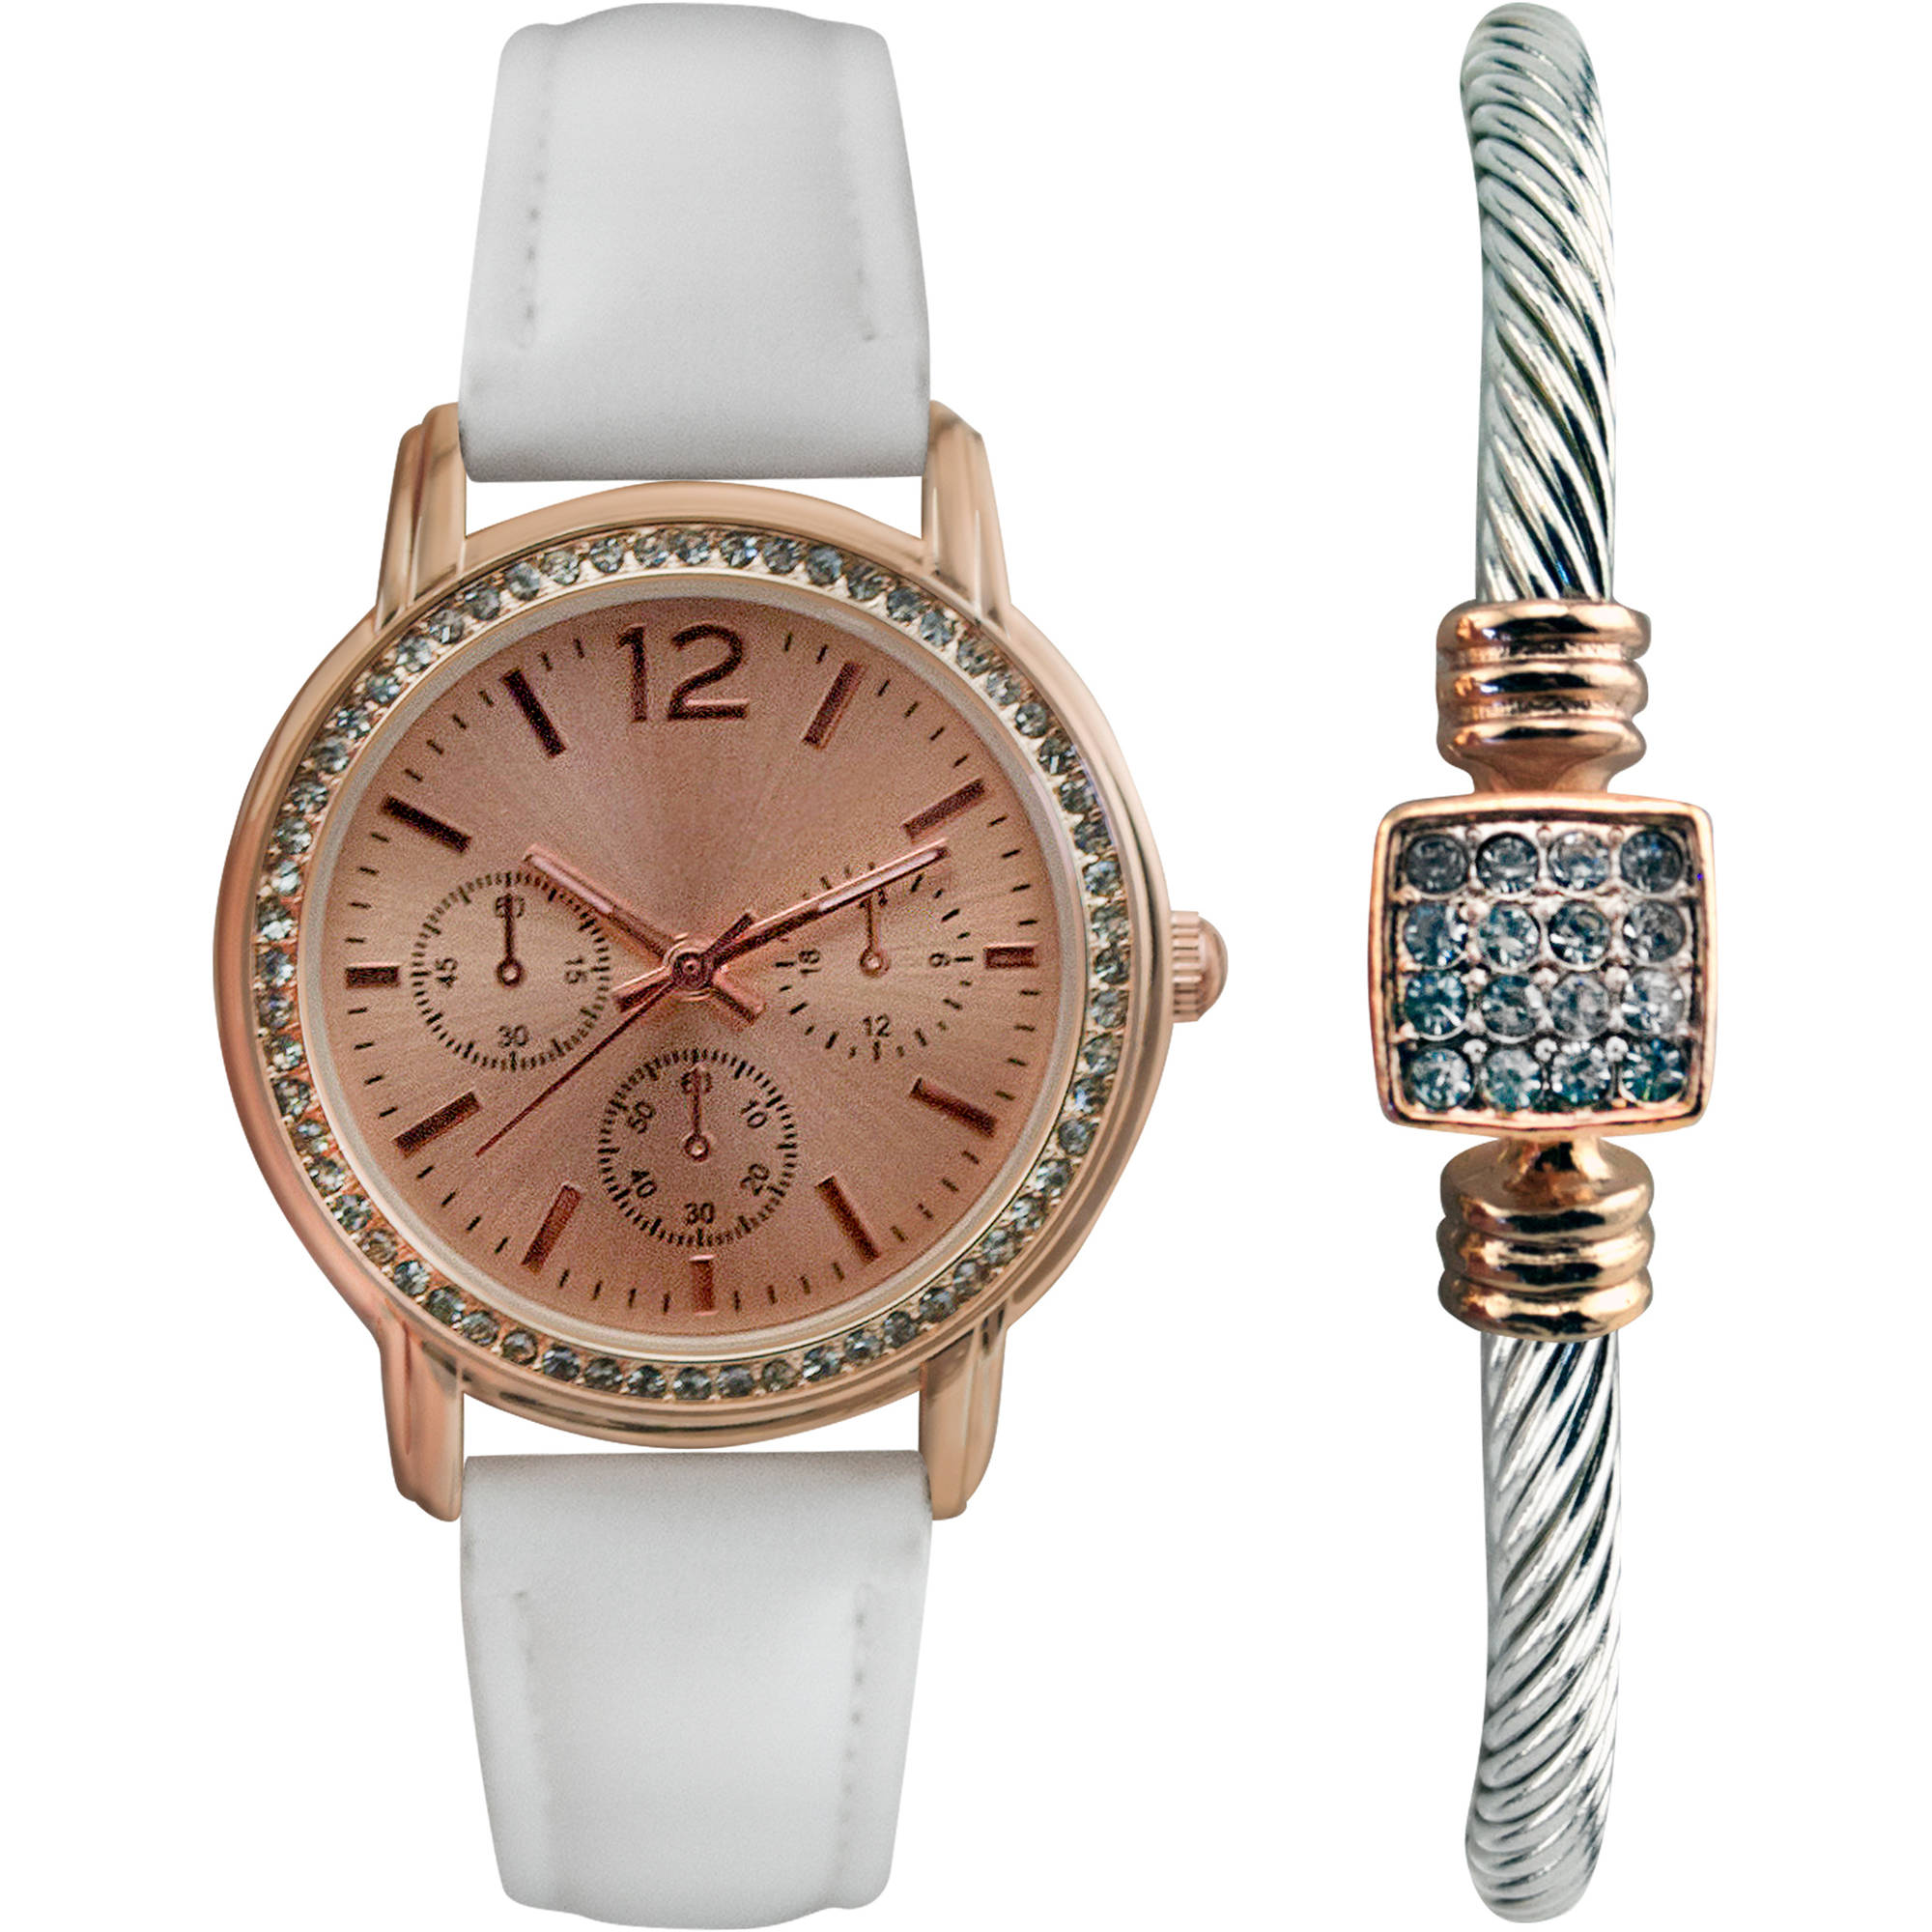 Women's Rose Gold Dial Watch with White Strap Gift Set and Bangle Bracelet